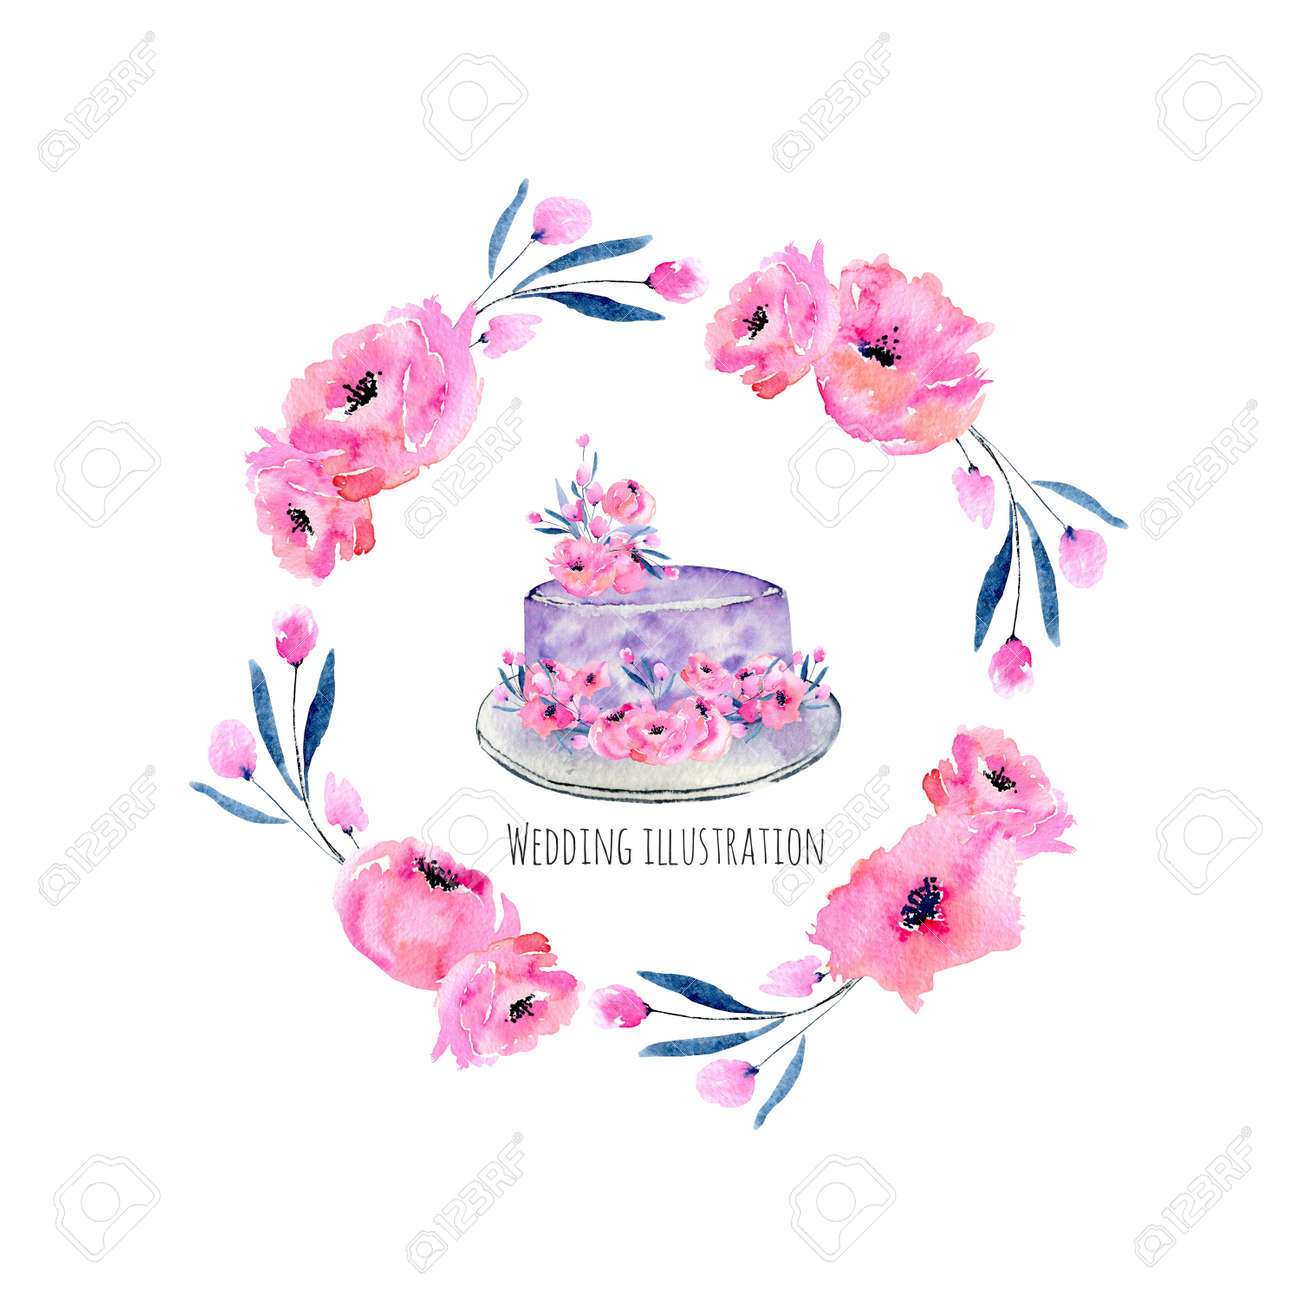 Watercolor Holiday Wedding Cake With Poppies Wreath Illustration ...